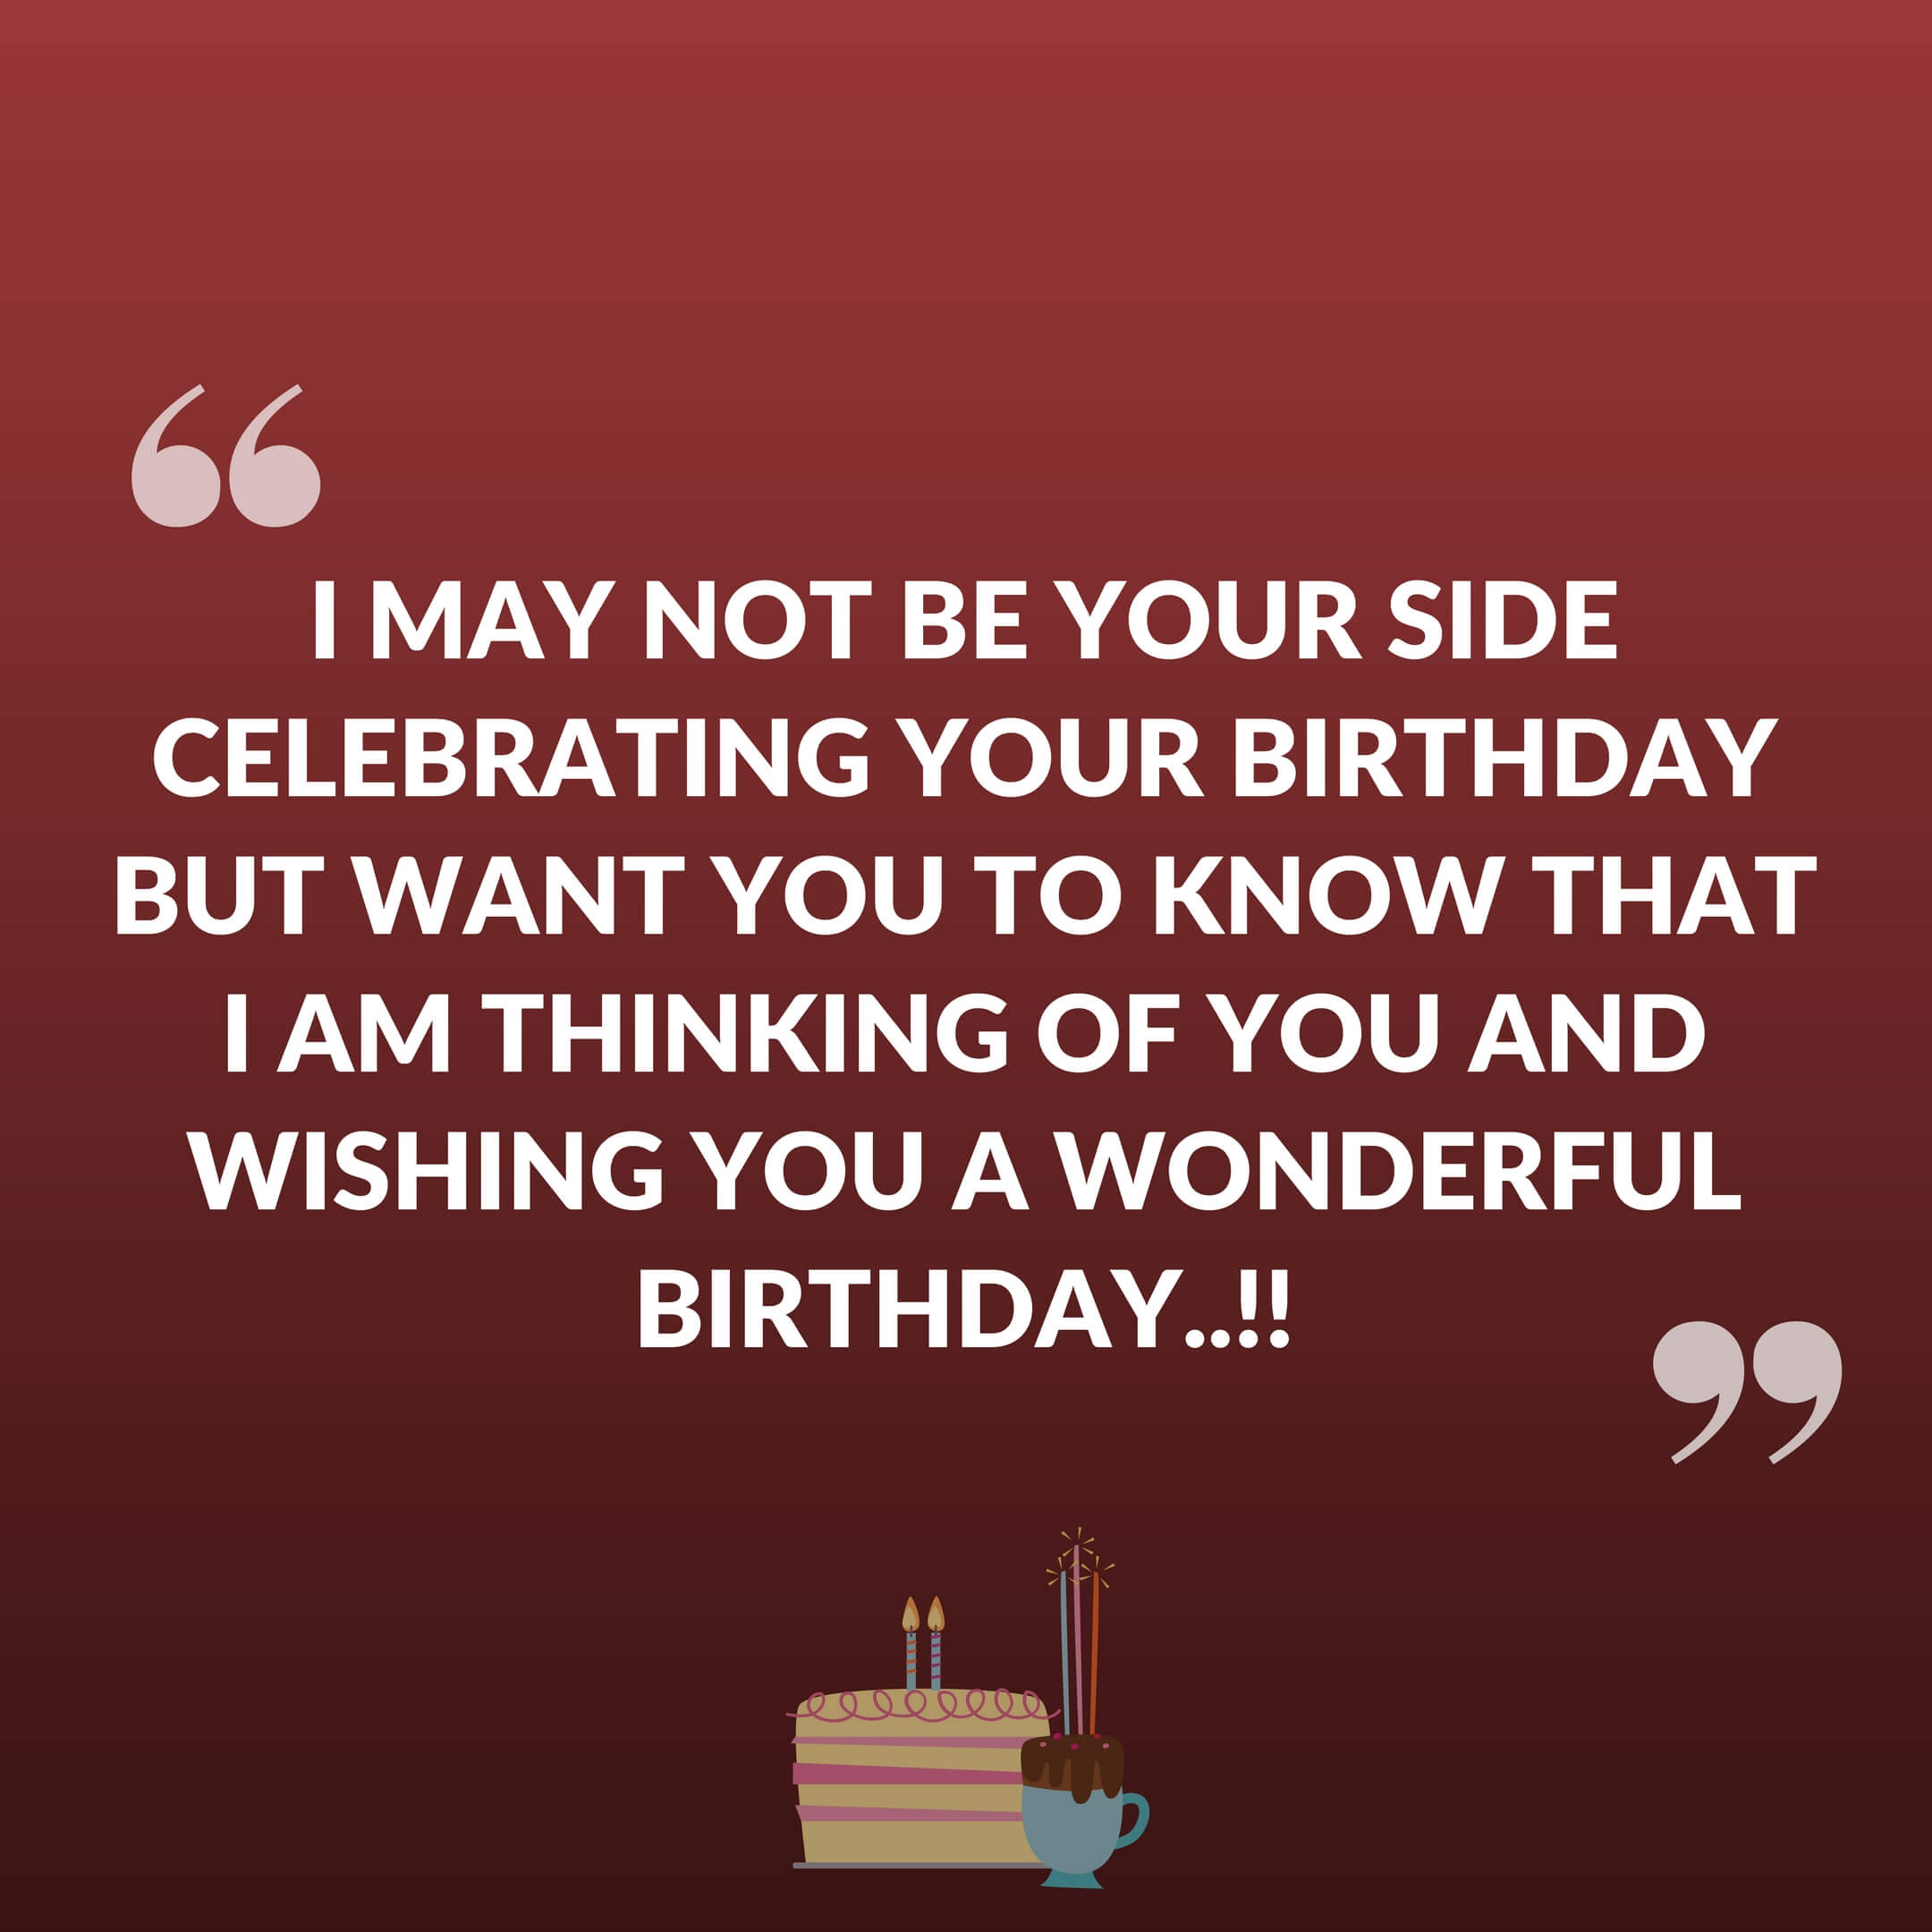 birthday wishes and quotes ; Birthday-Wishes-Quotesx98204